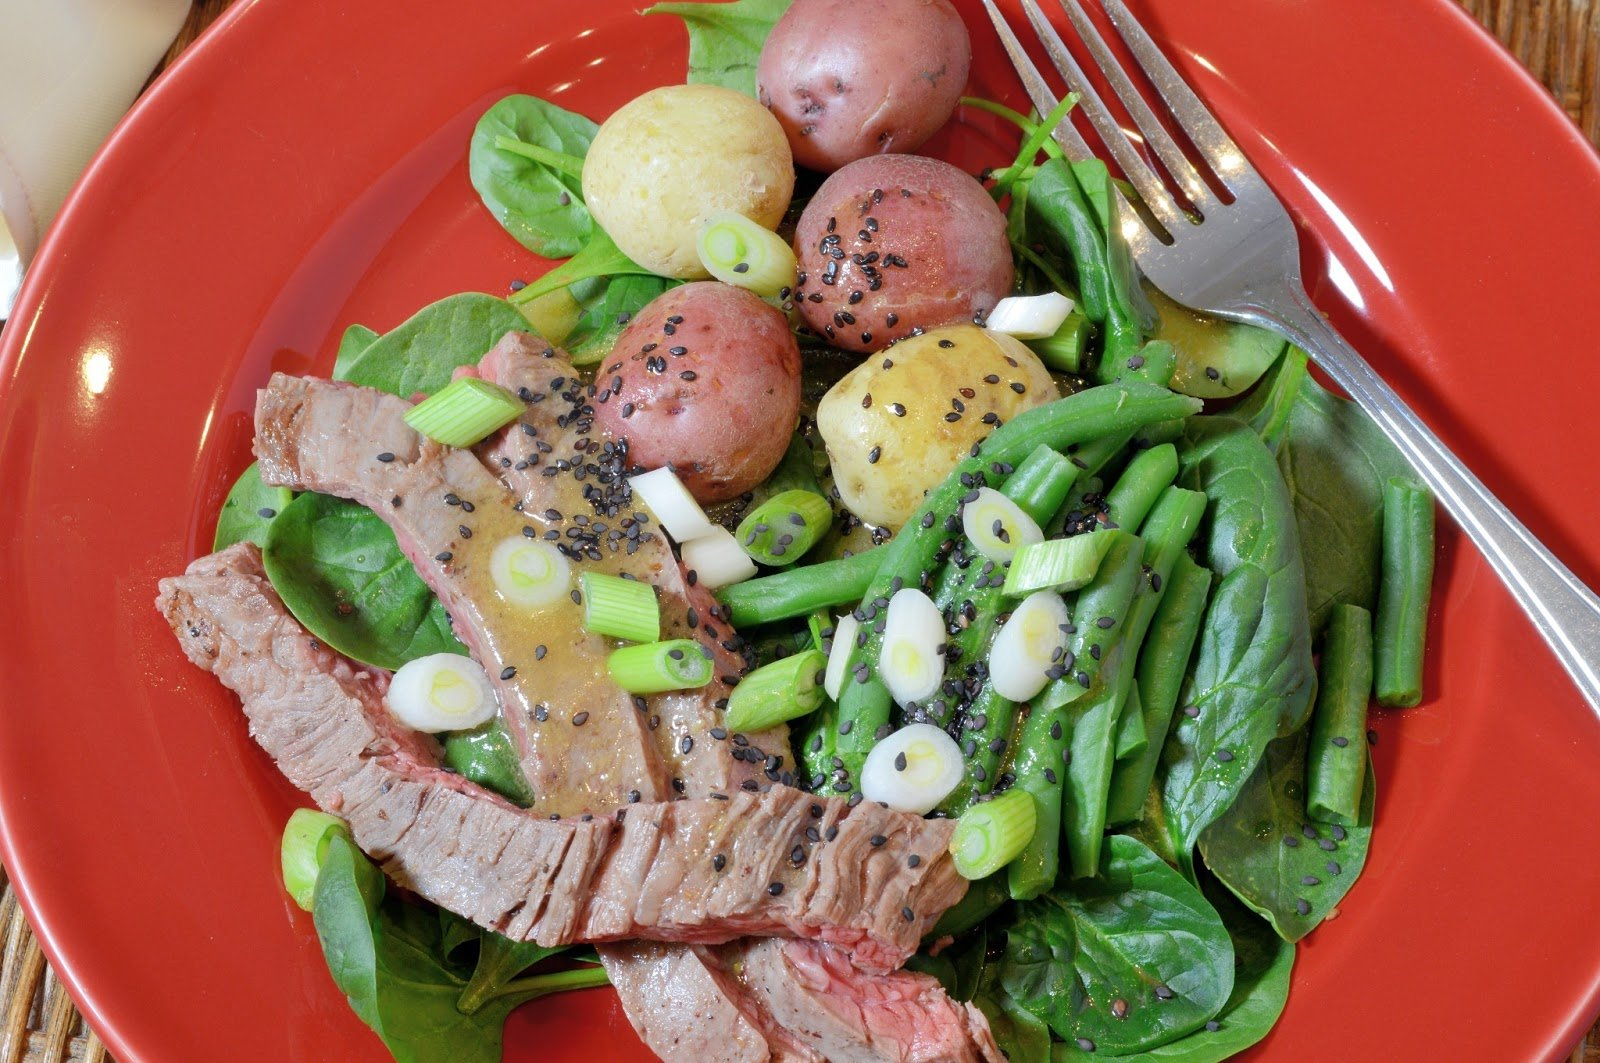 Hanger Steak Spinach Salad with Green Beans and Potatoes